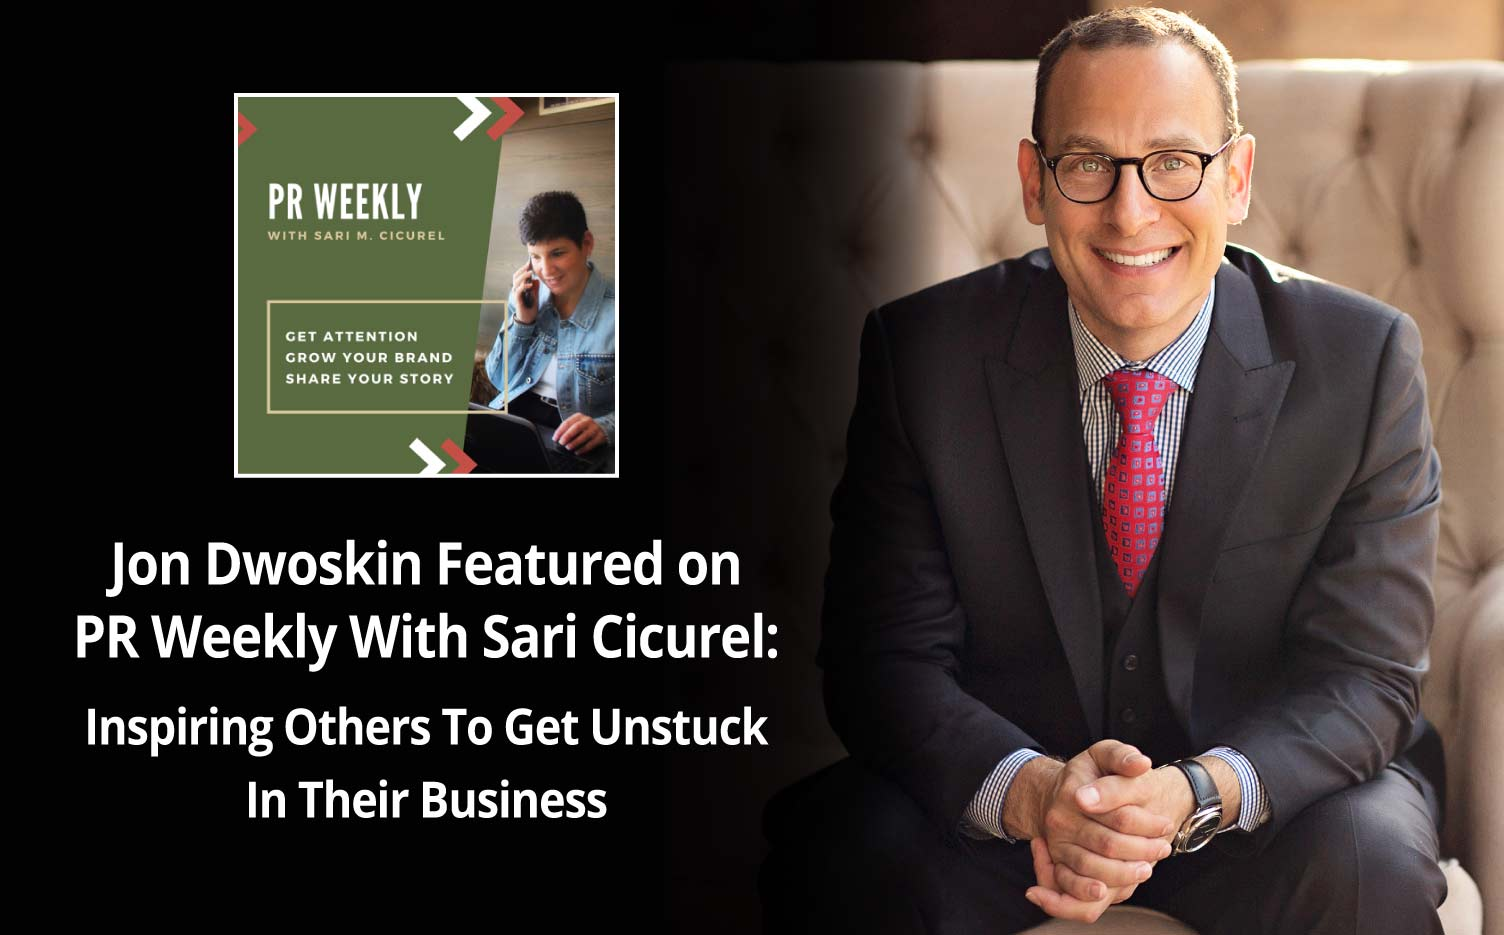 Jon Dwoskin Featured on PR Weekly With Sari Cicurel: Inspiring Others To Get Unstuck In Their Business